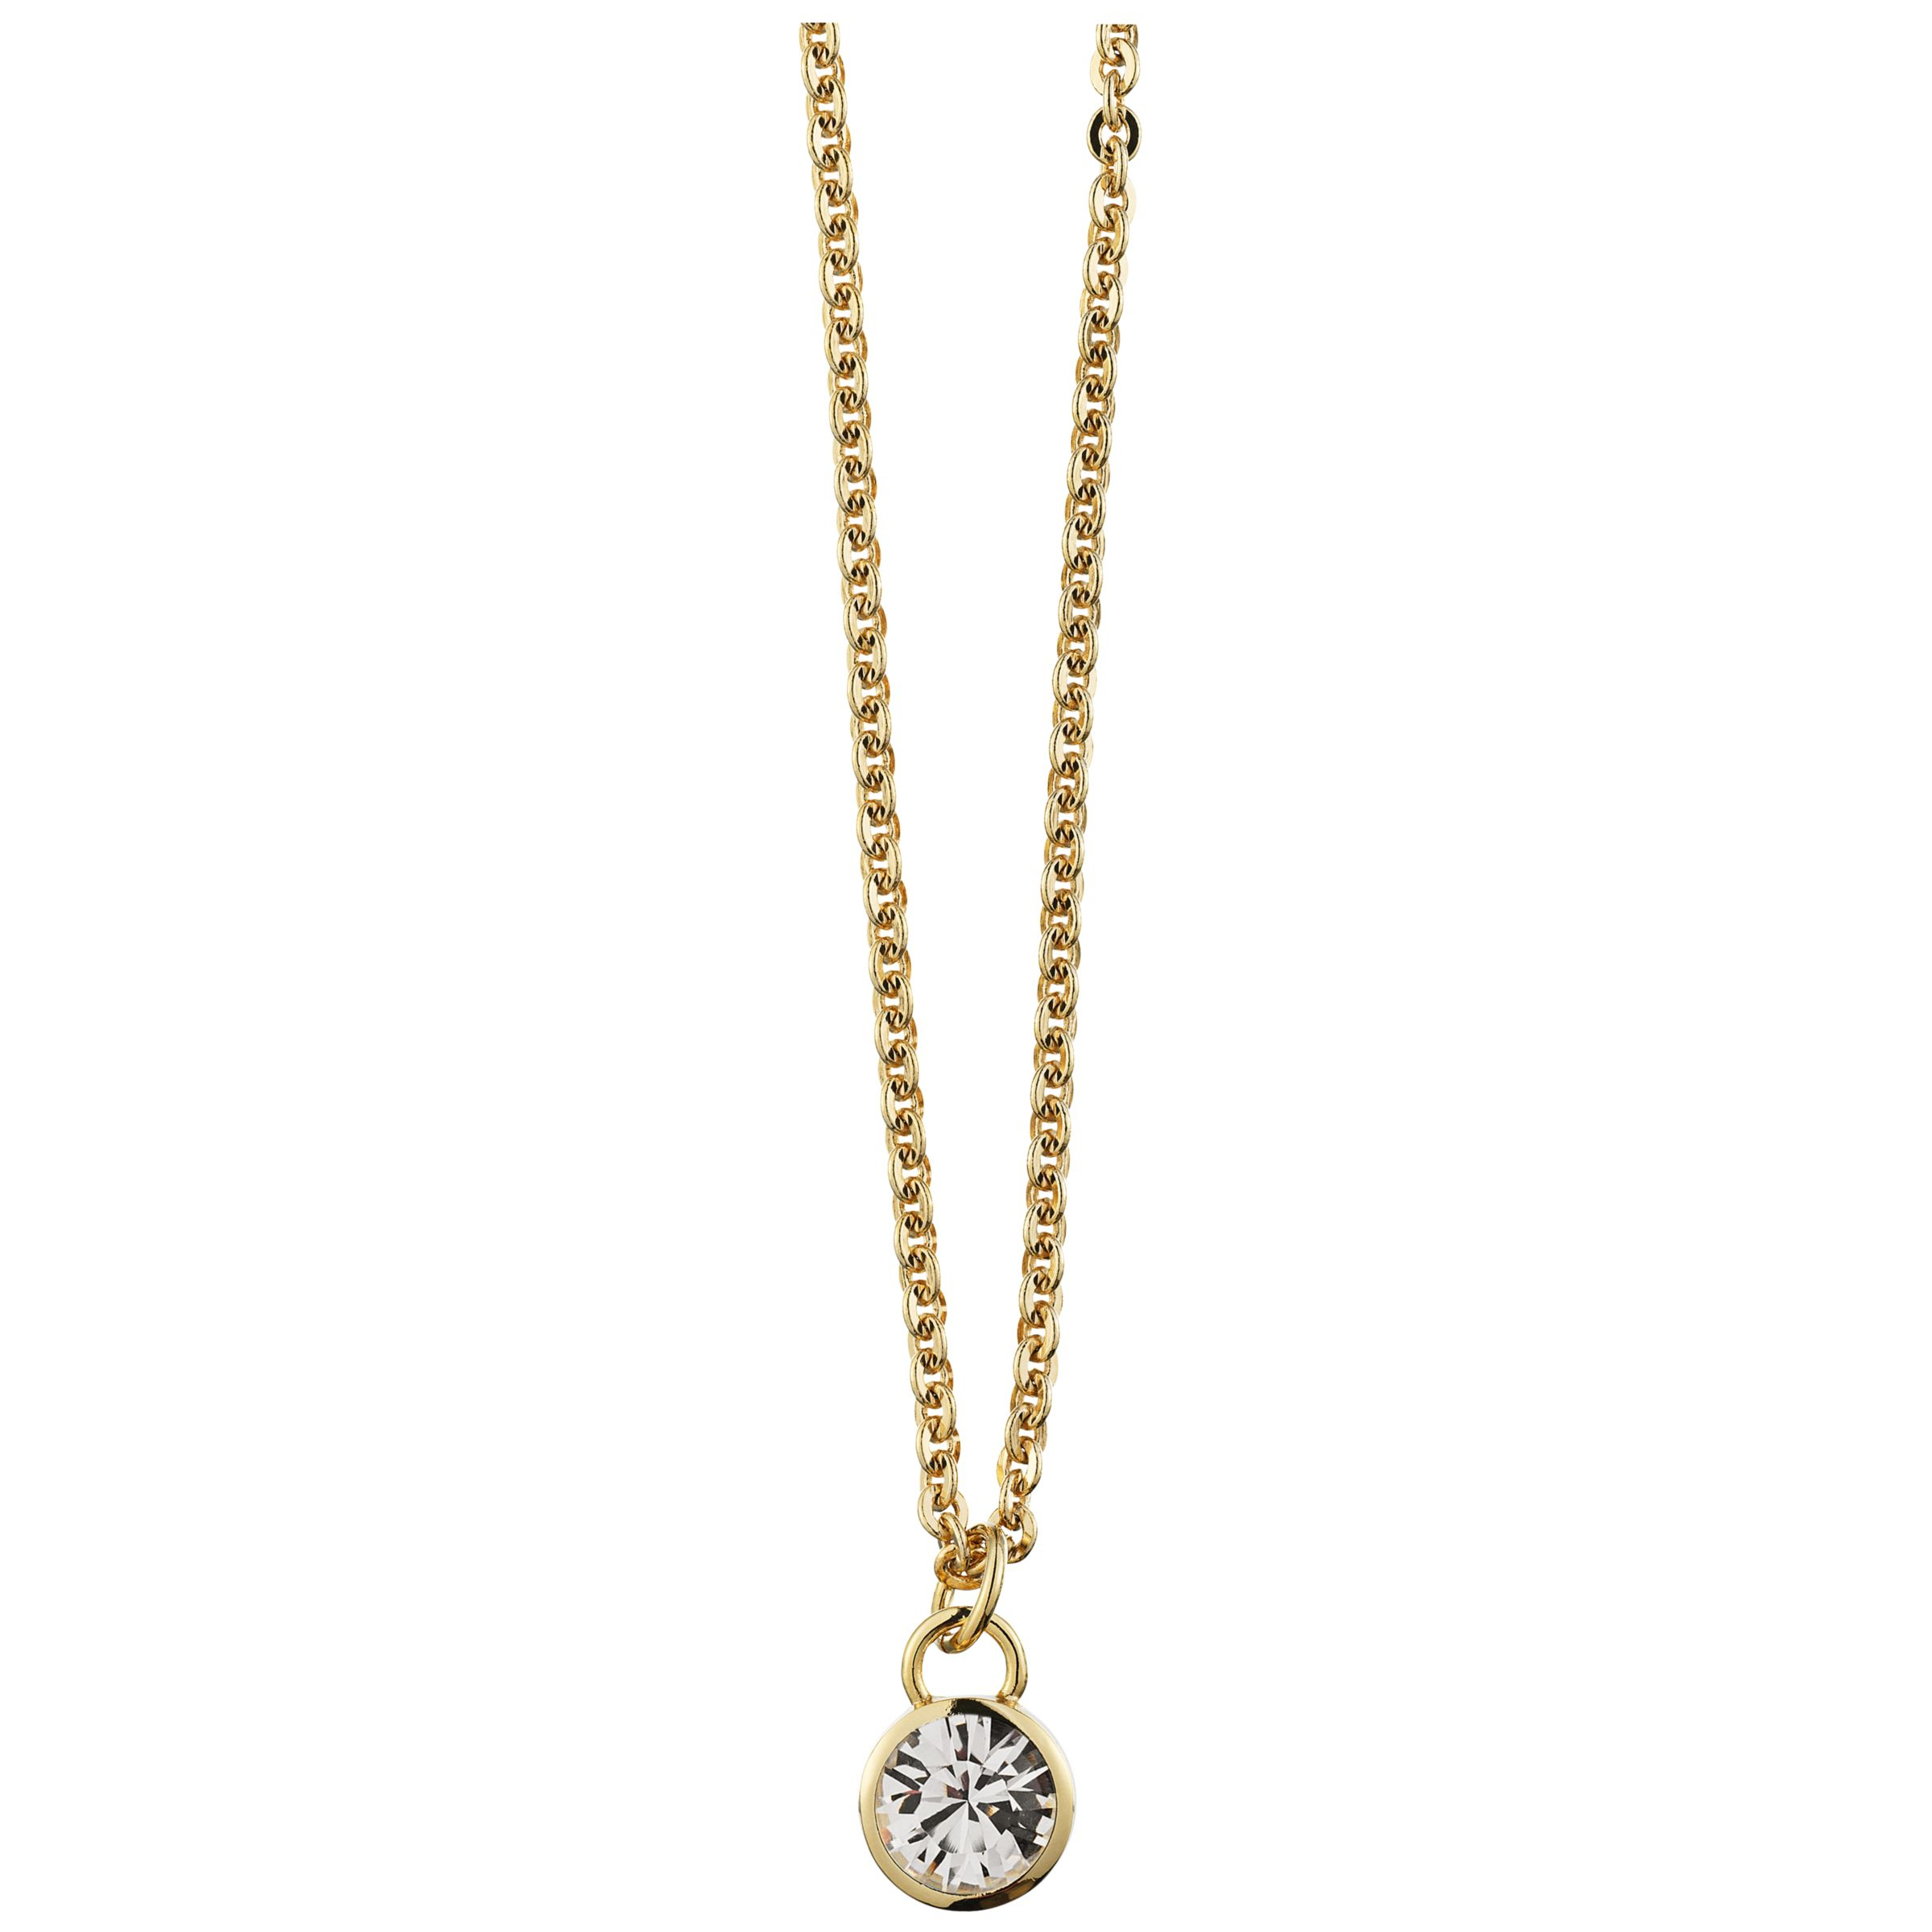 Dyrberg/Kern Luan Gold Crystal Necklace